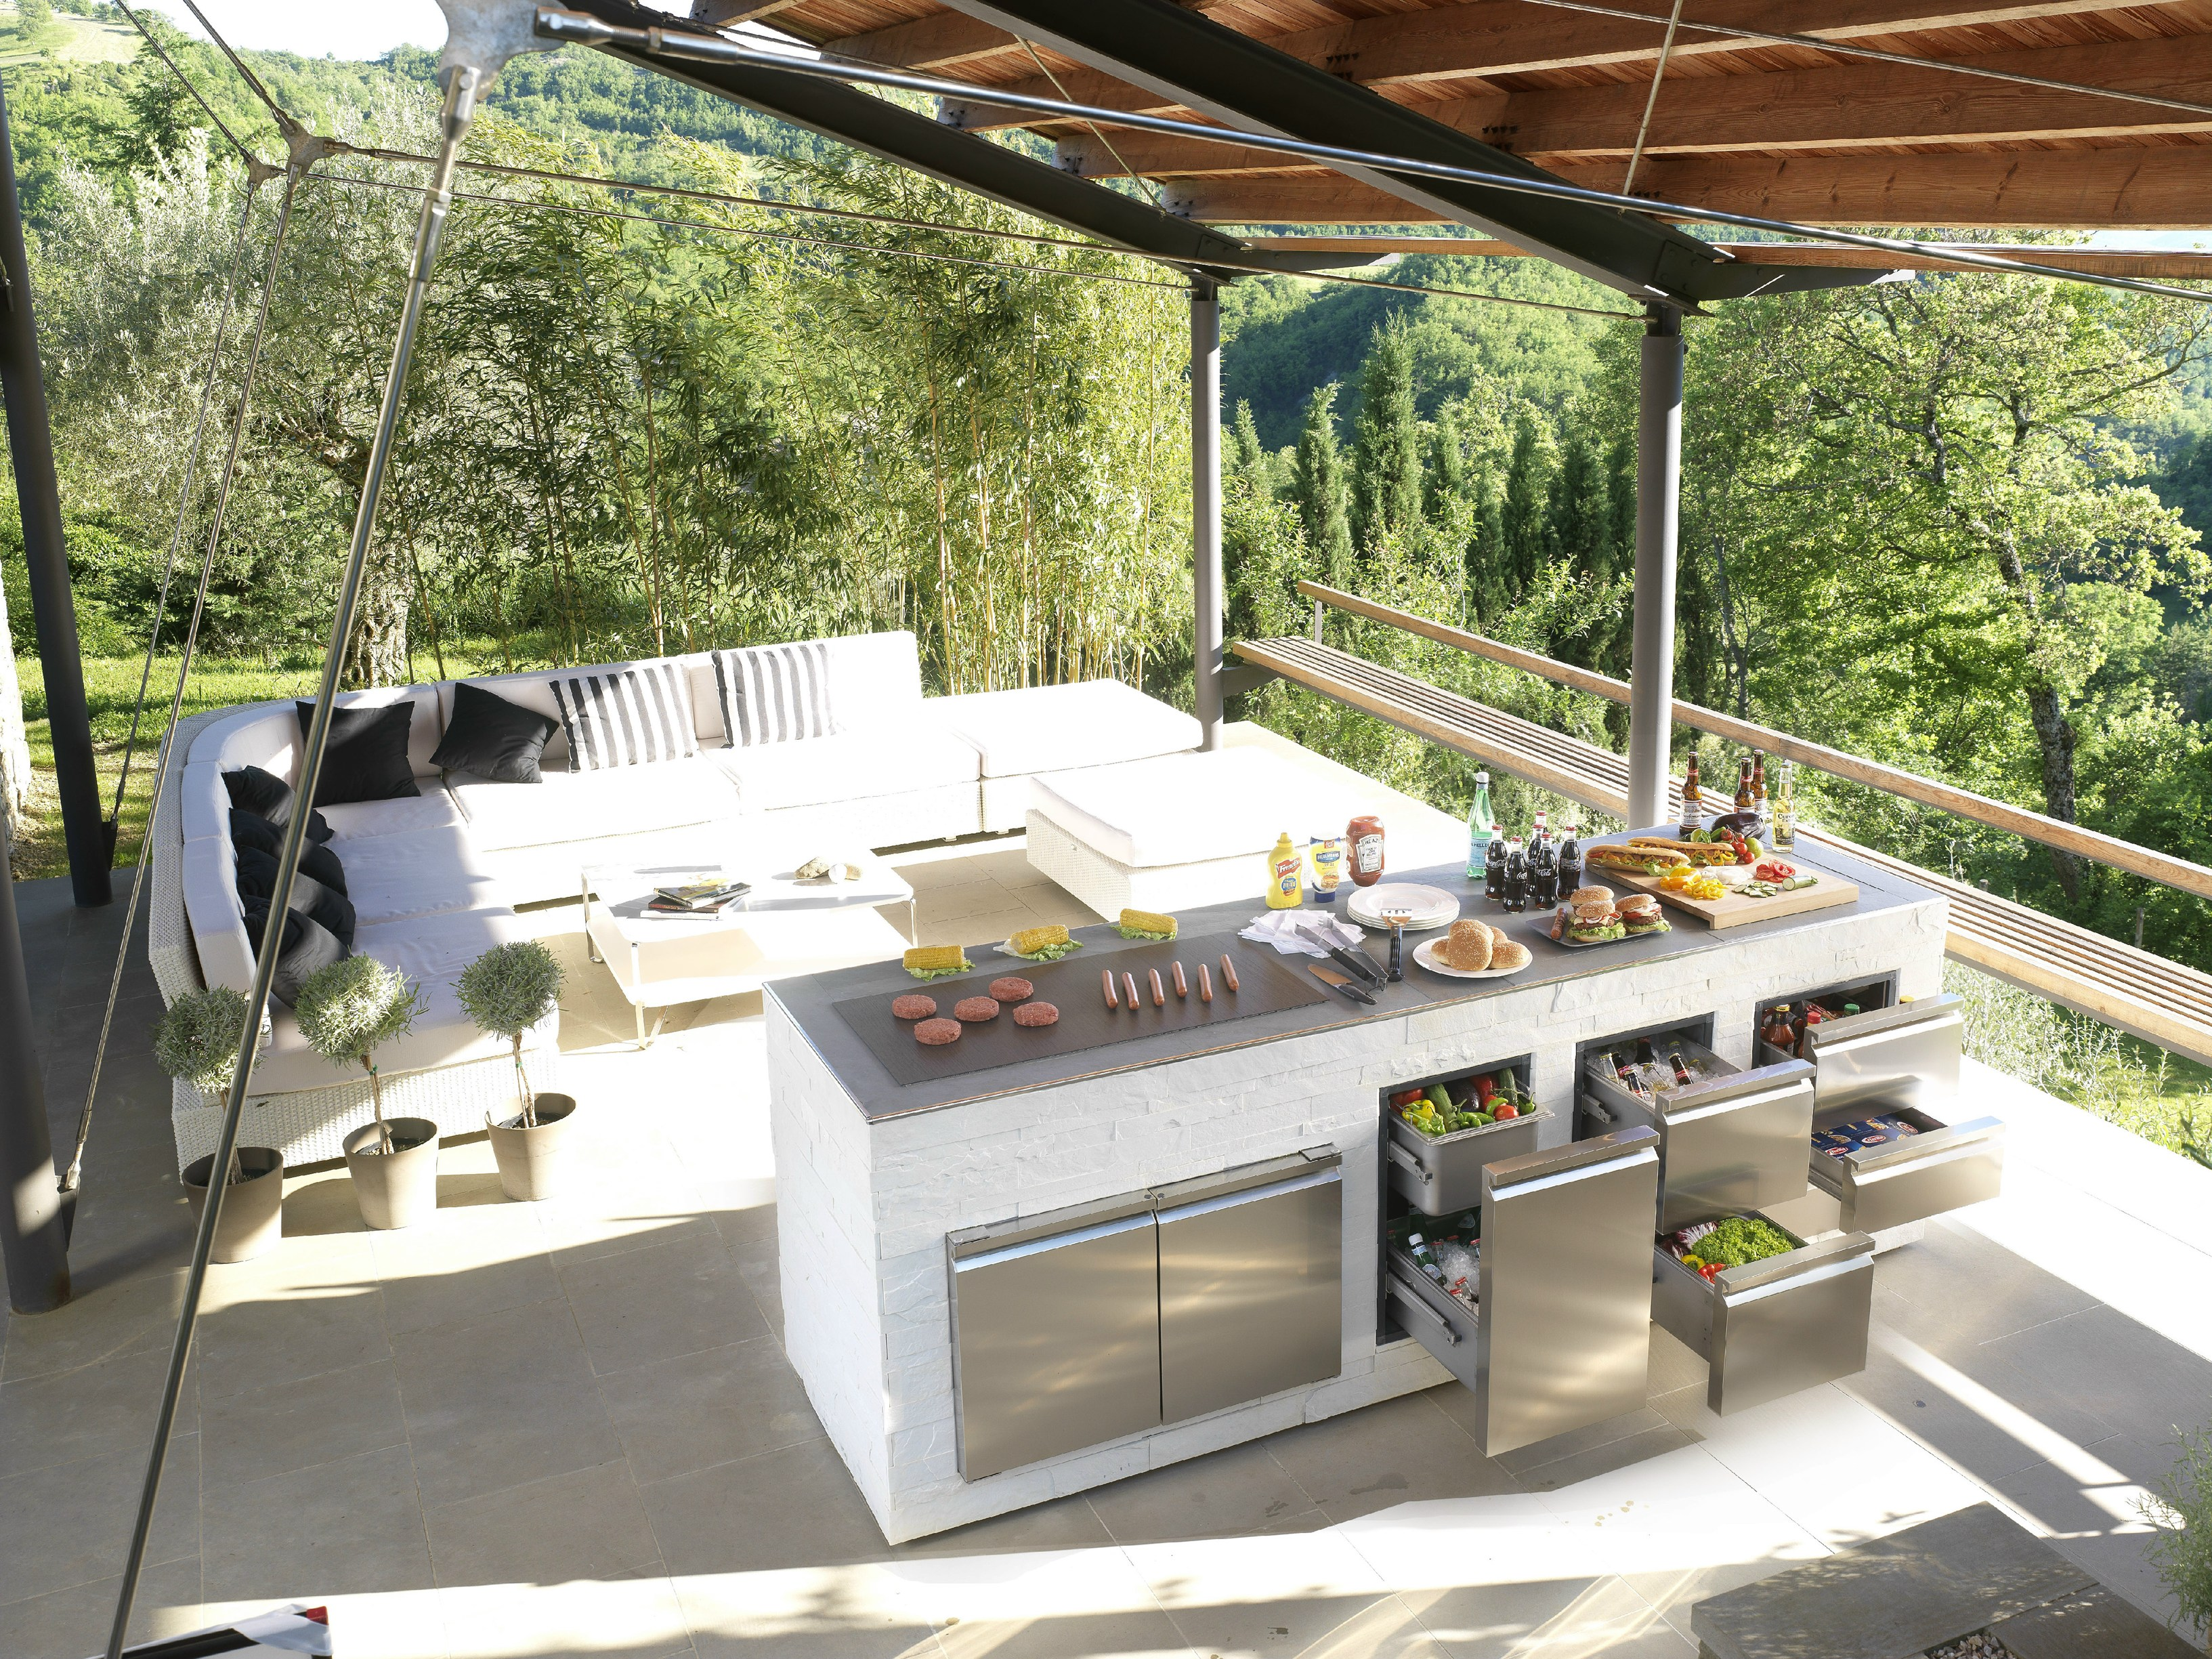 Cucine In Muratura Esterne ~ avienix.com for .